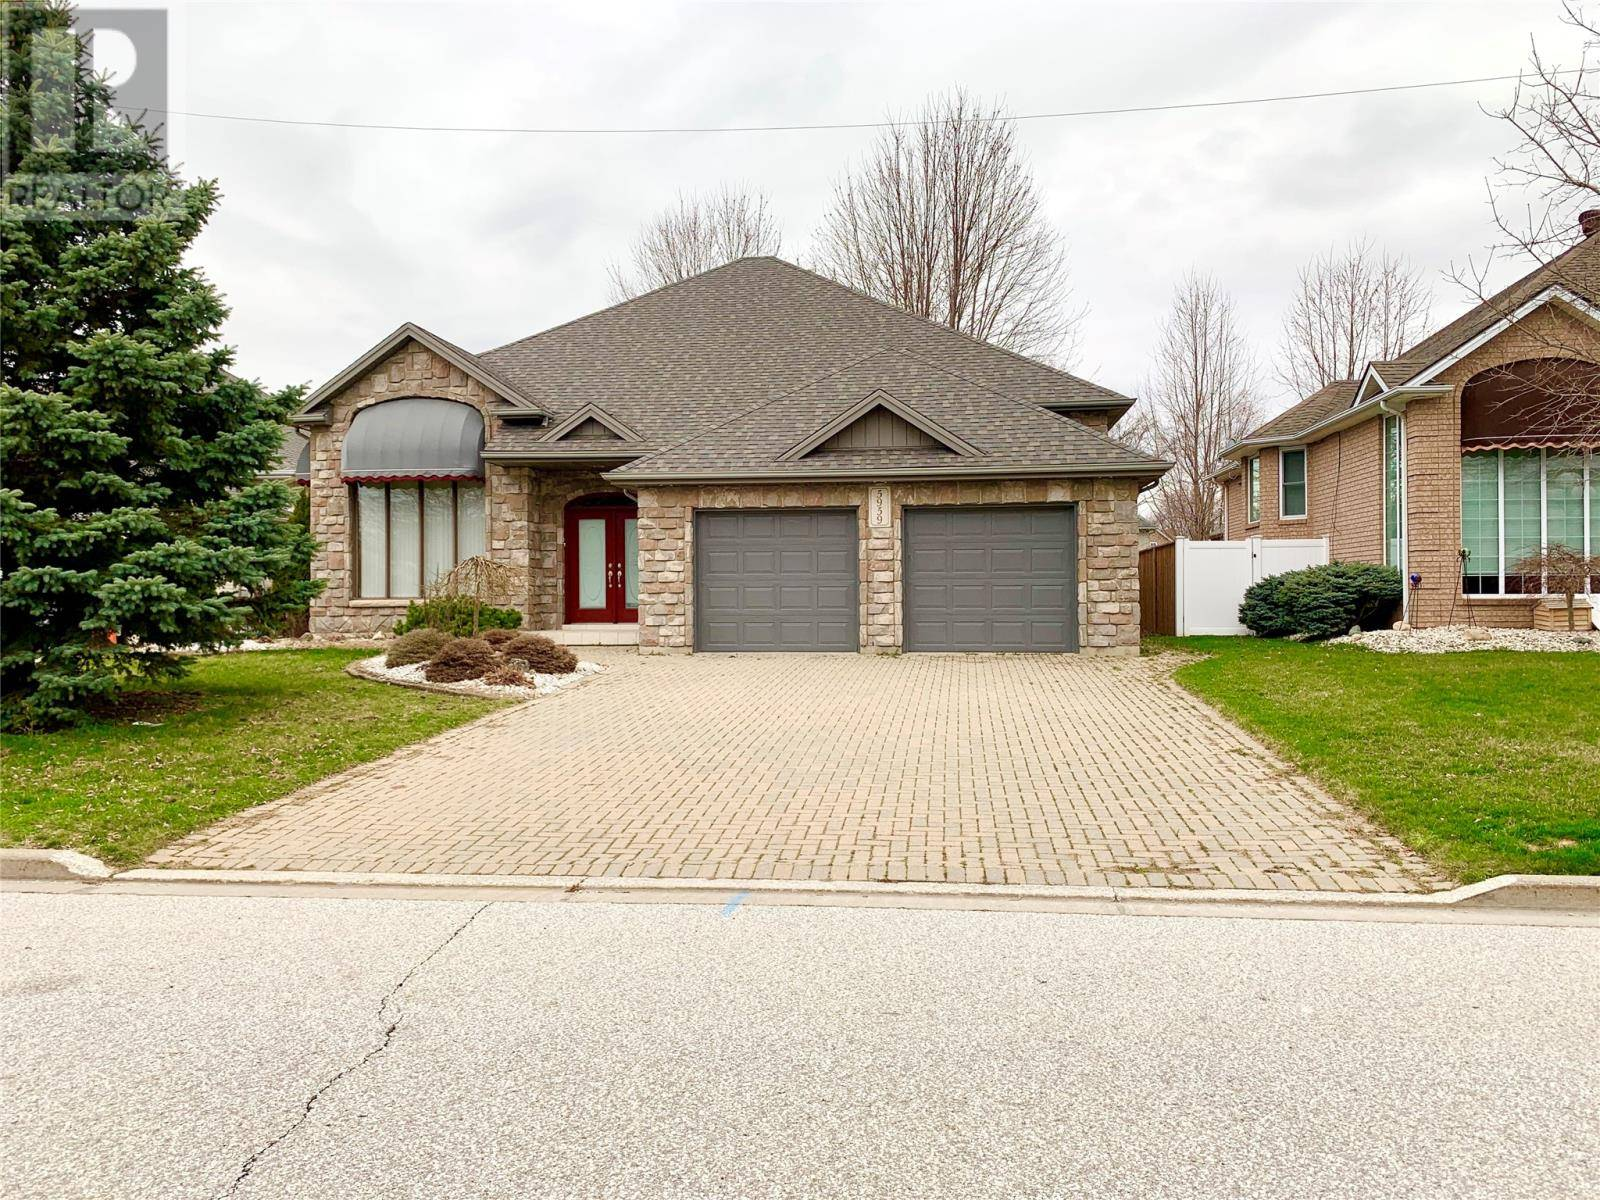 House for sale at 5959 Rosewood Cres Lasalle Ontario - MLS: 20003865